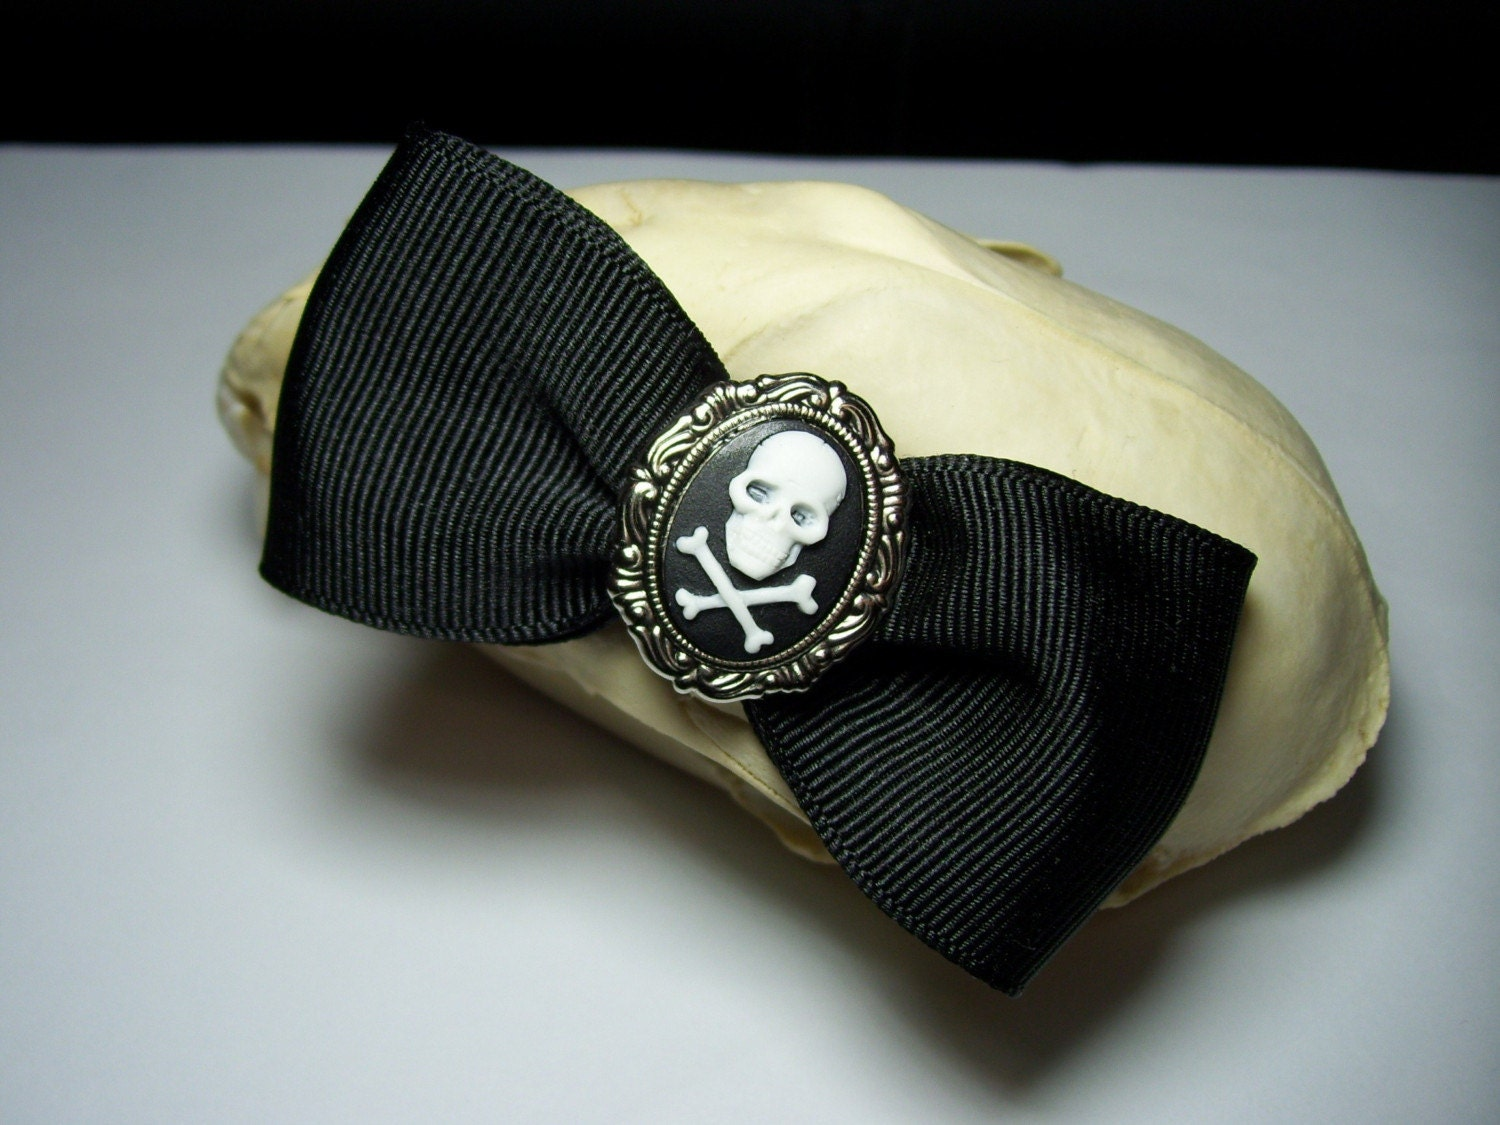 Adorable Antique Silver Black and White  Skull Cross Bones Cameo Gothic Lolita Steampunk Hair Bow Barrette Pin Clip